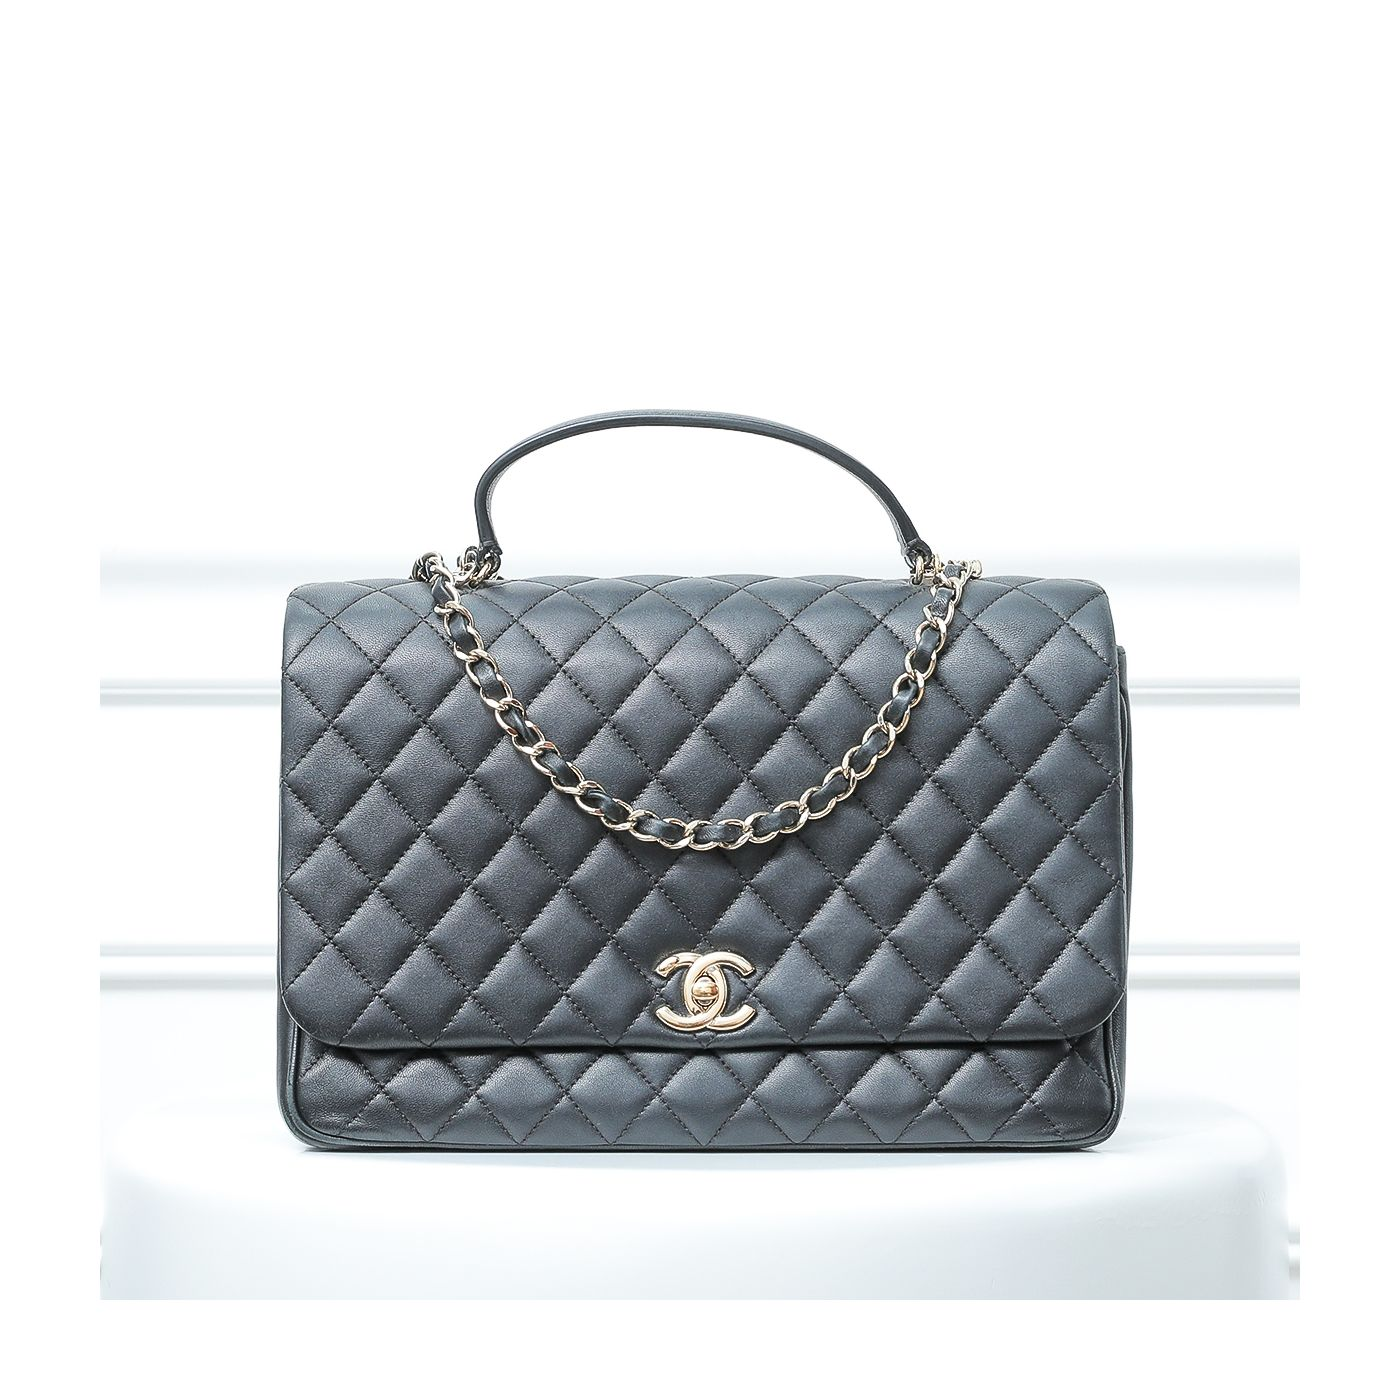 Chanel Black Quilted Top Handle Bag